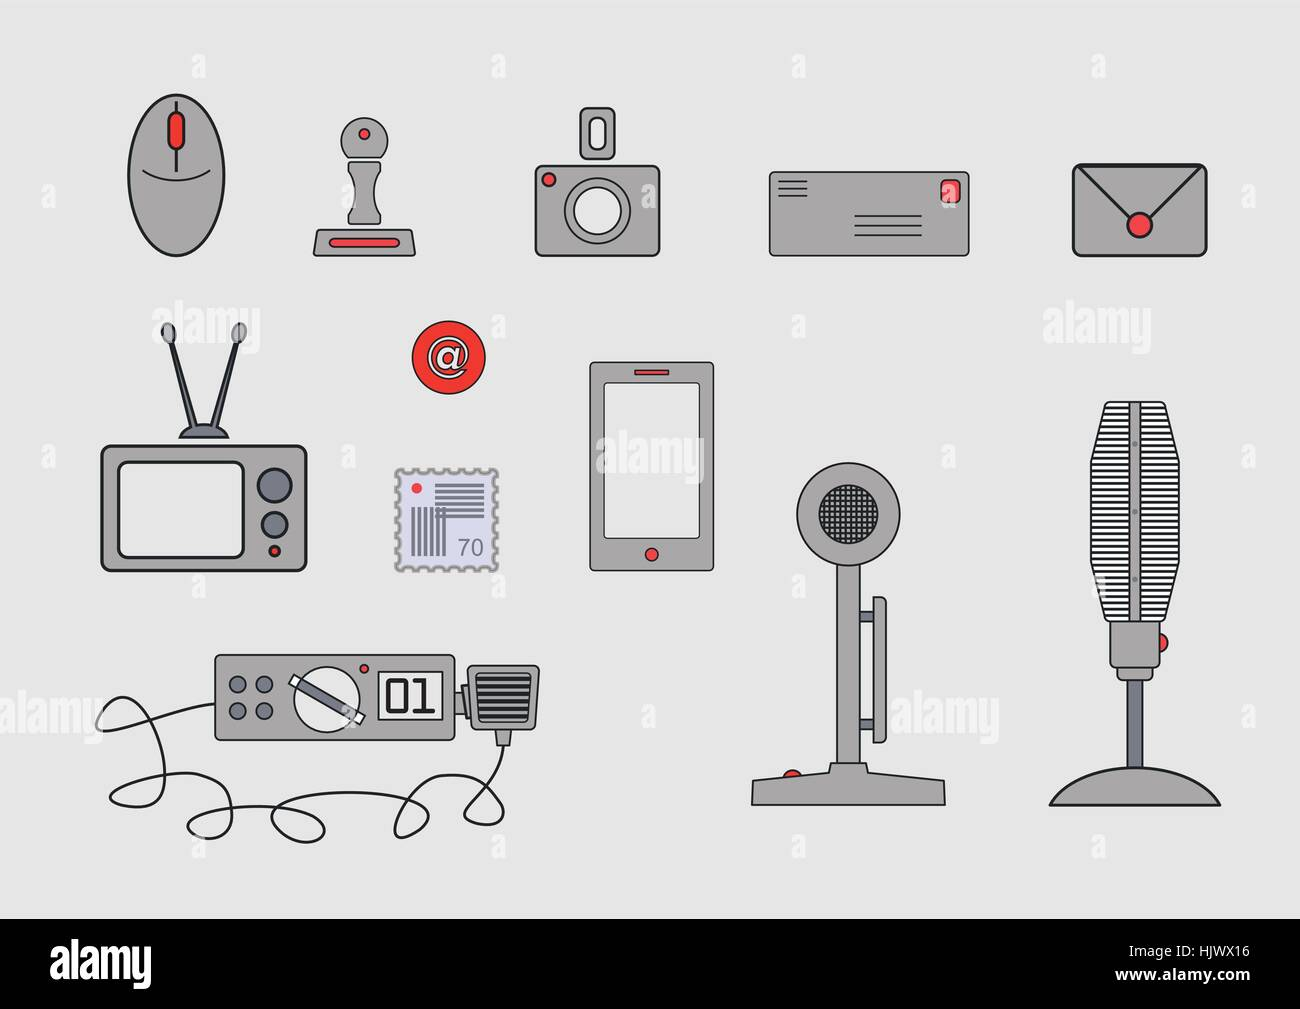 Various communication devices. - Stock Image